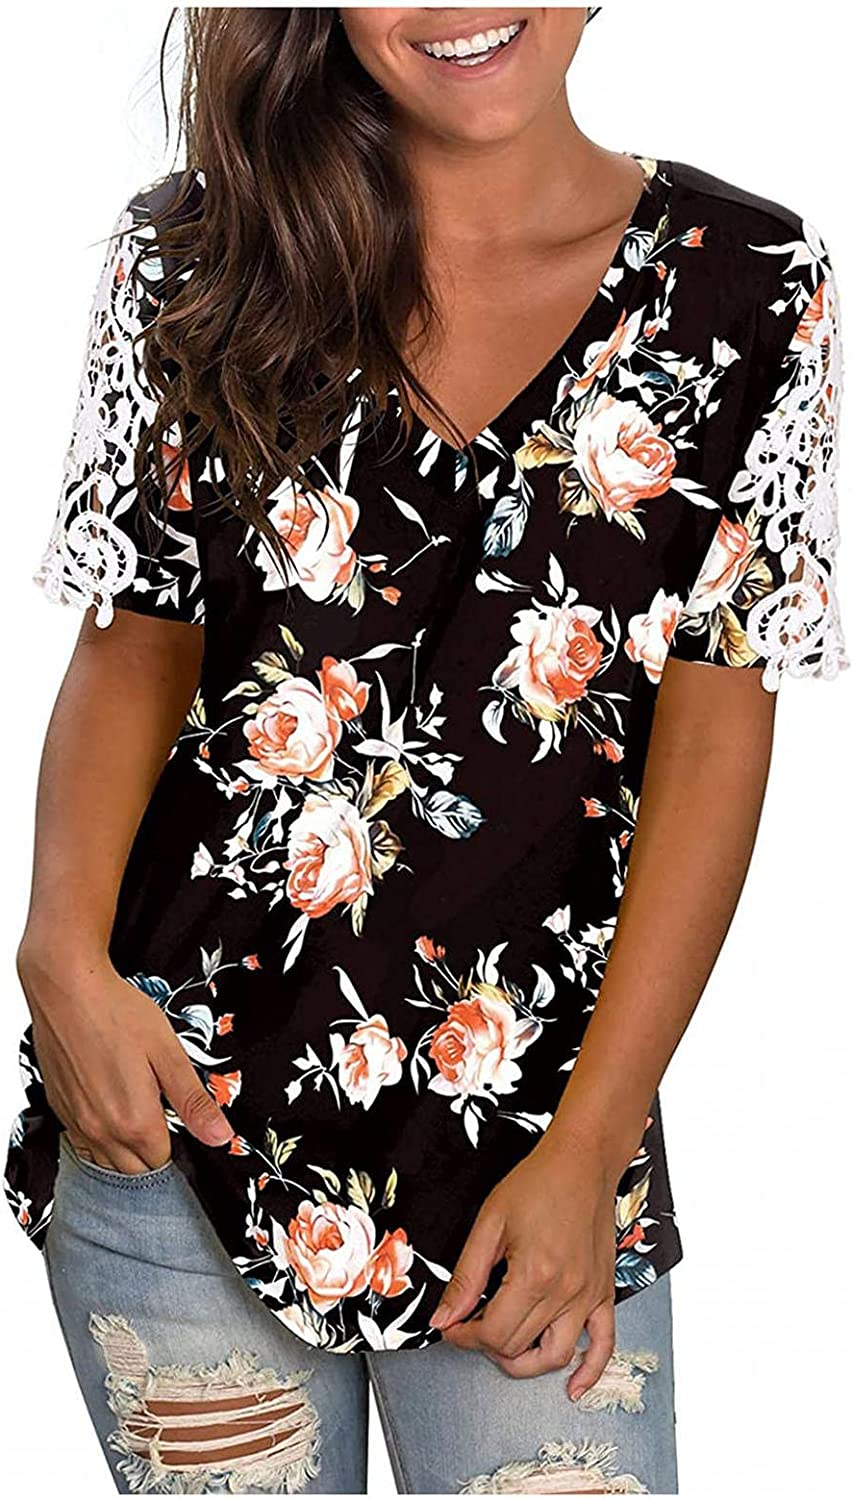 Teprec Summer Tops for Women, Womens Casual Floral V Neck Short Sleeve T-Shirts Plus Size Tops Blouse Basic Tunic Tee